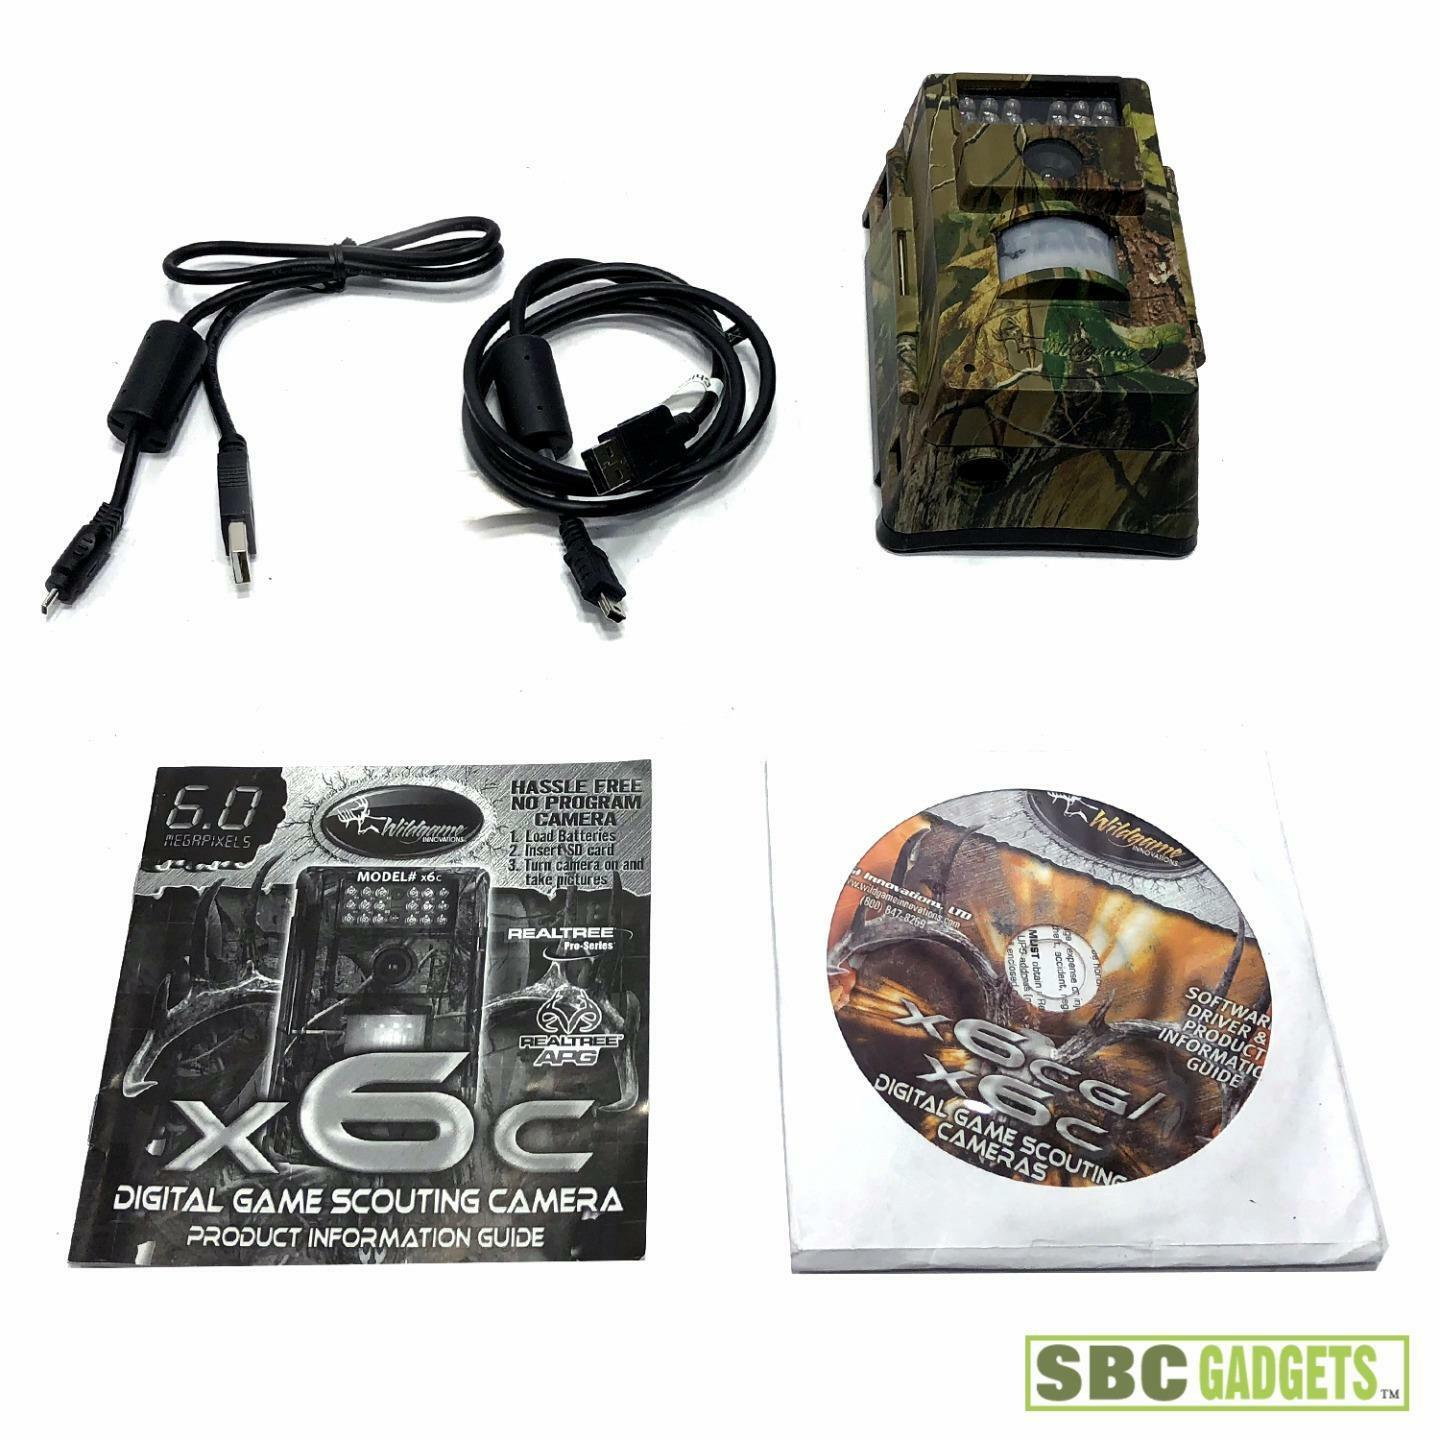 Wildgame Innovations X6C 6MP Digital Game Scouting Camera REALTREE